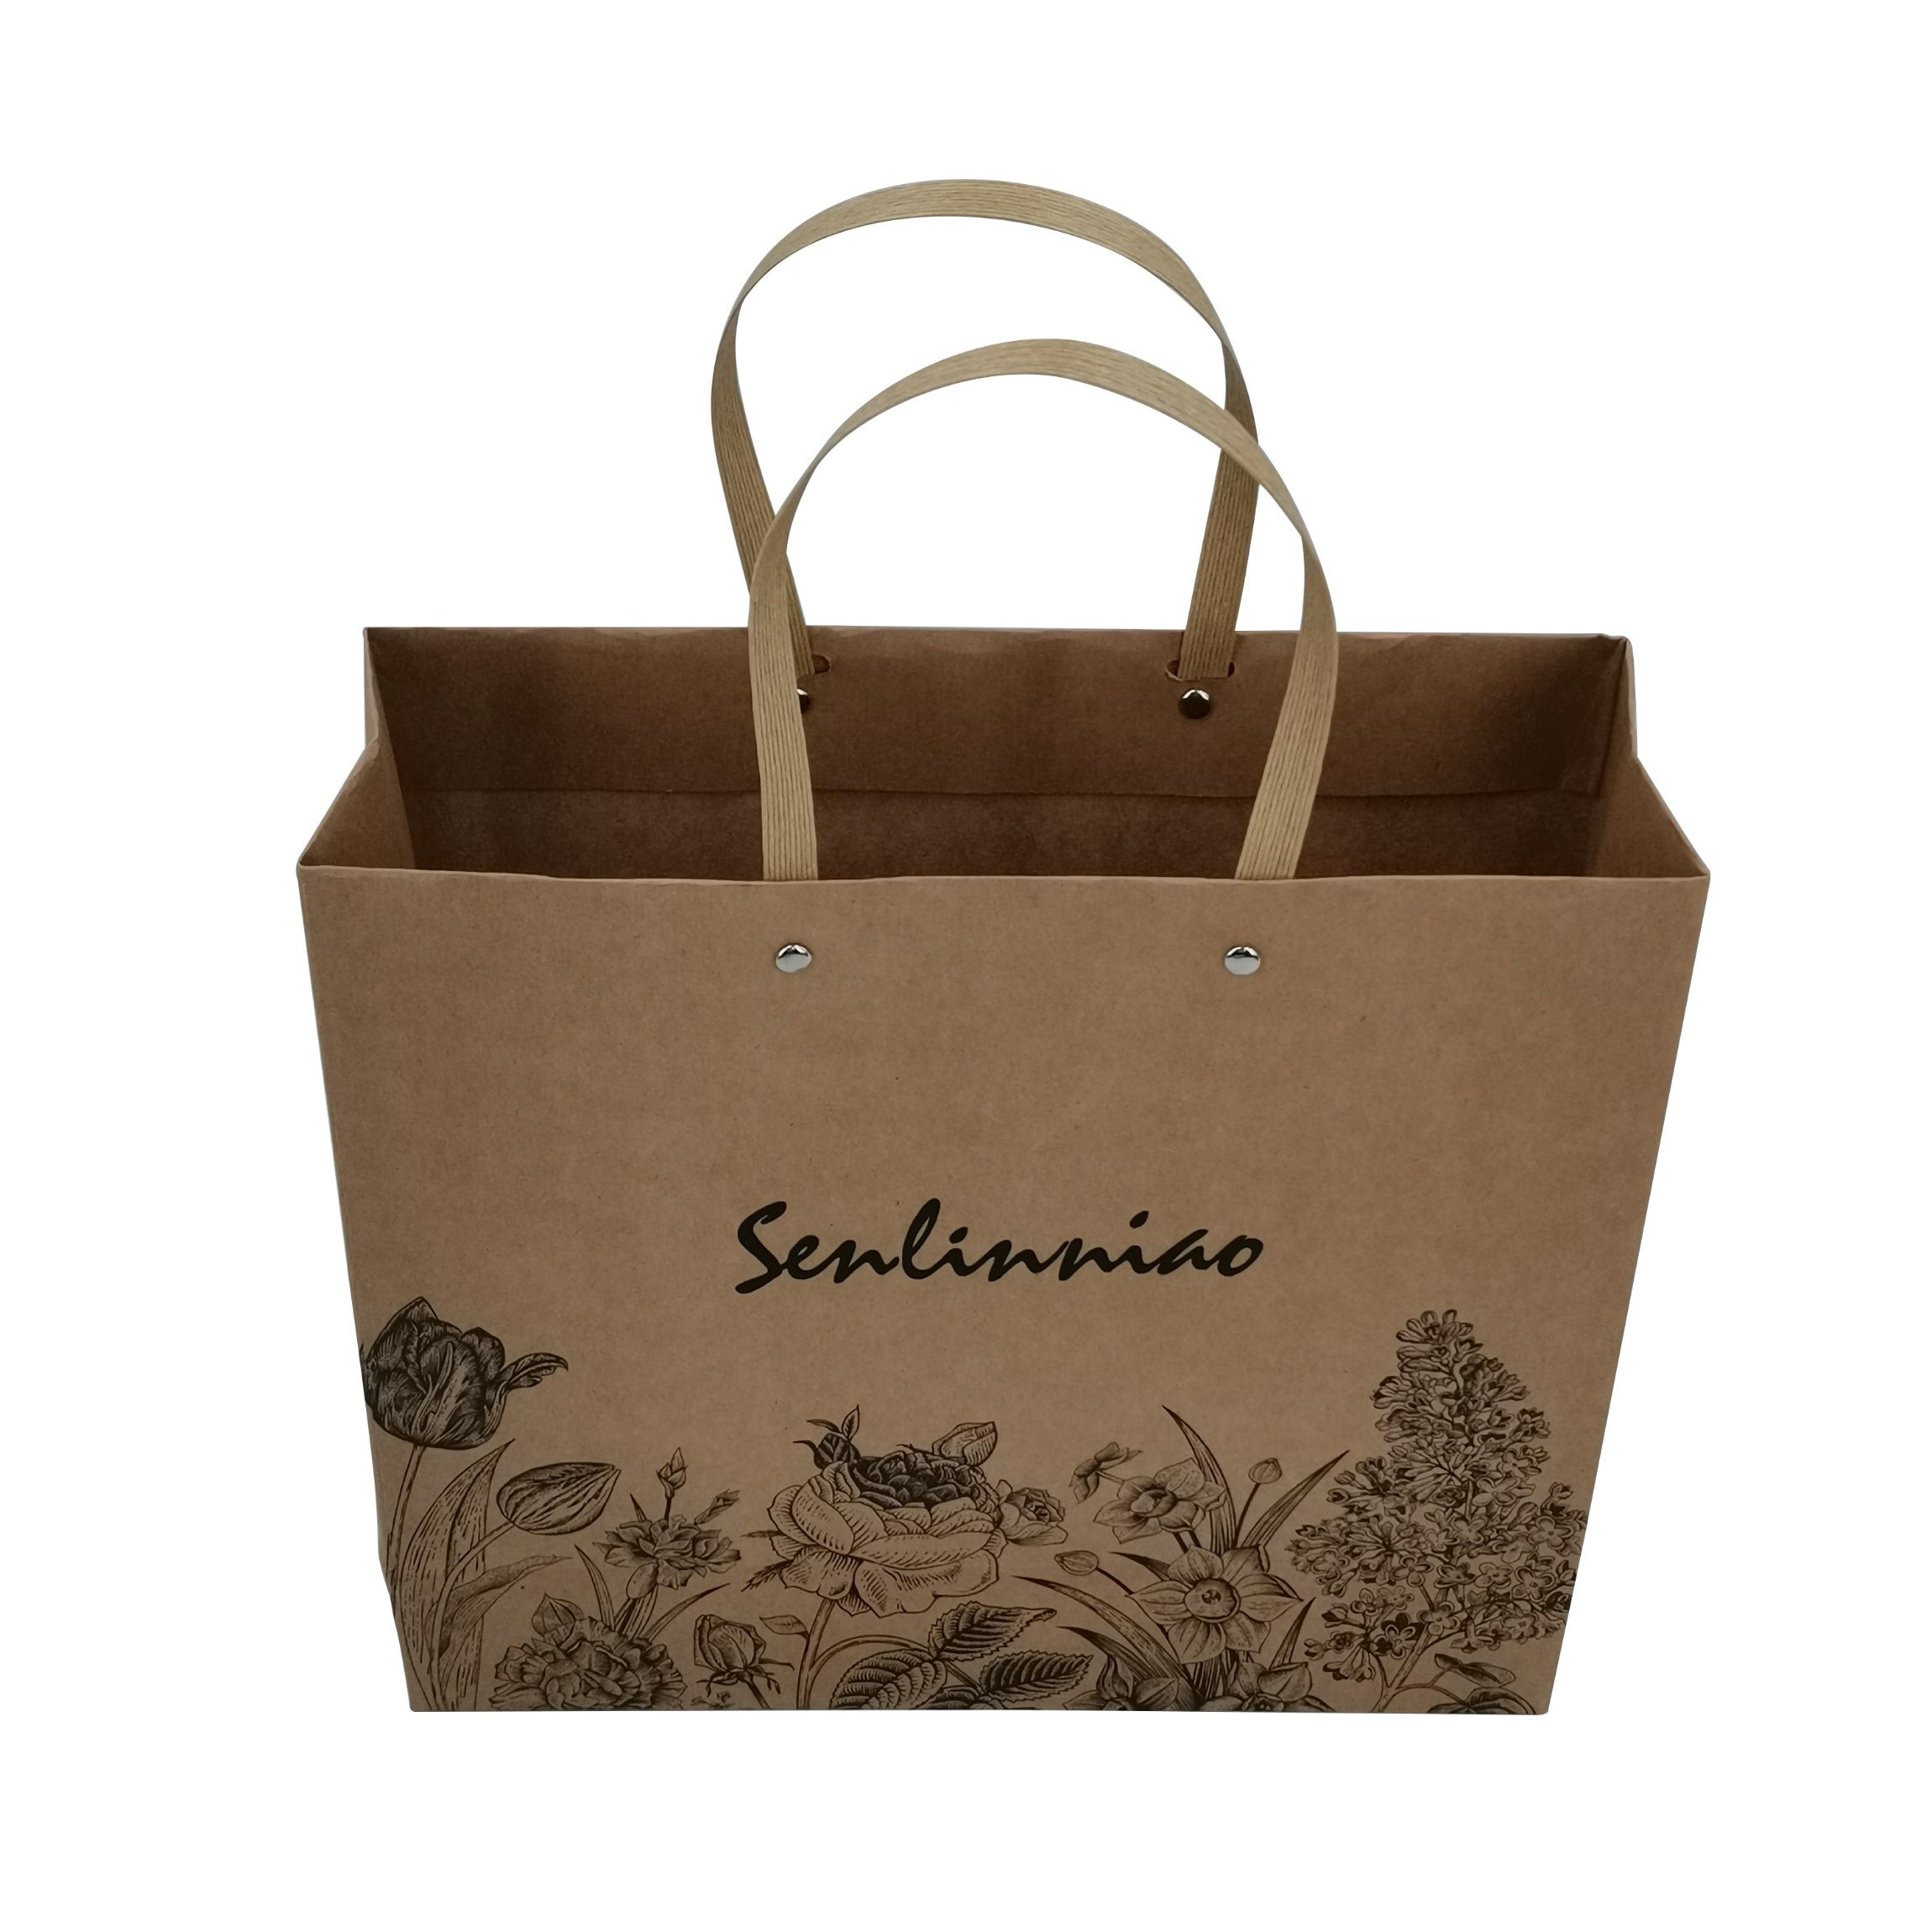 A3 Size Brown Paper Bags With Handles